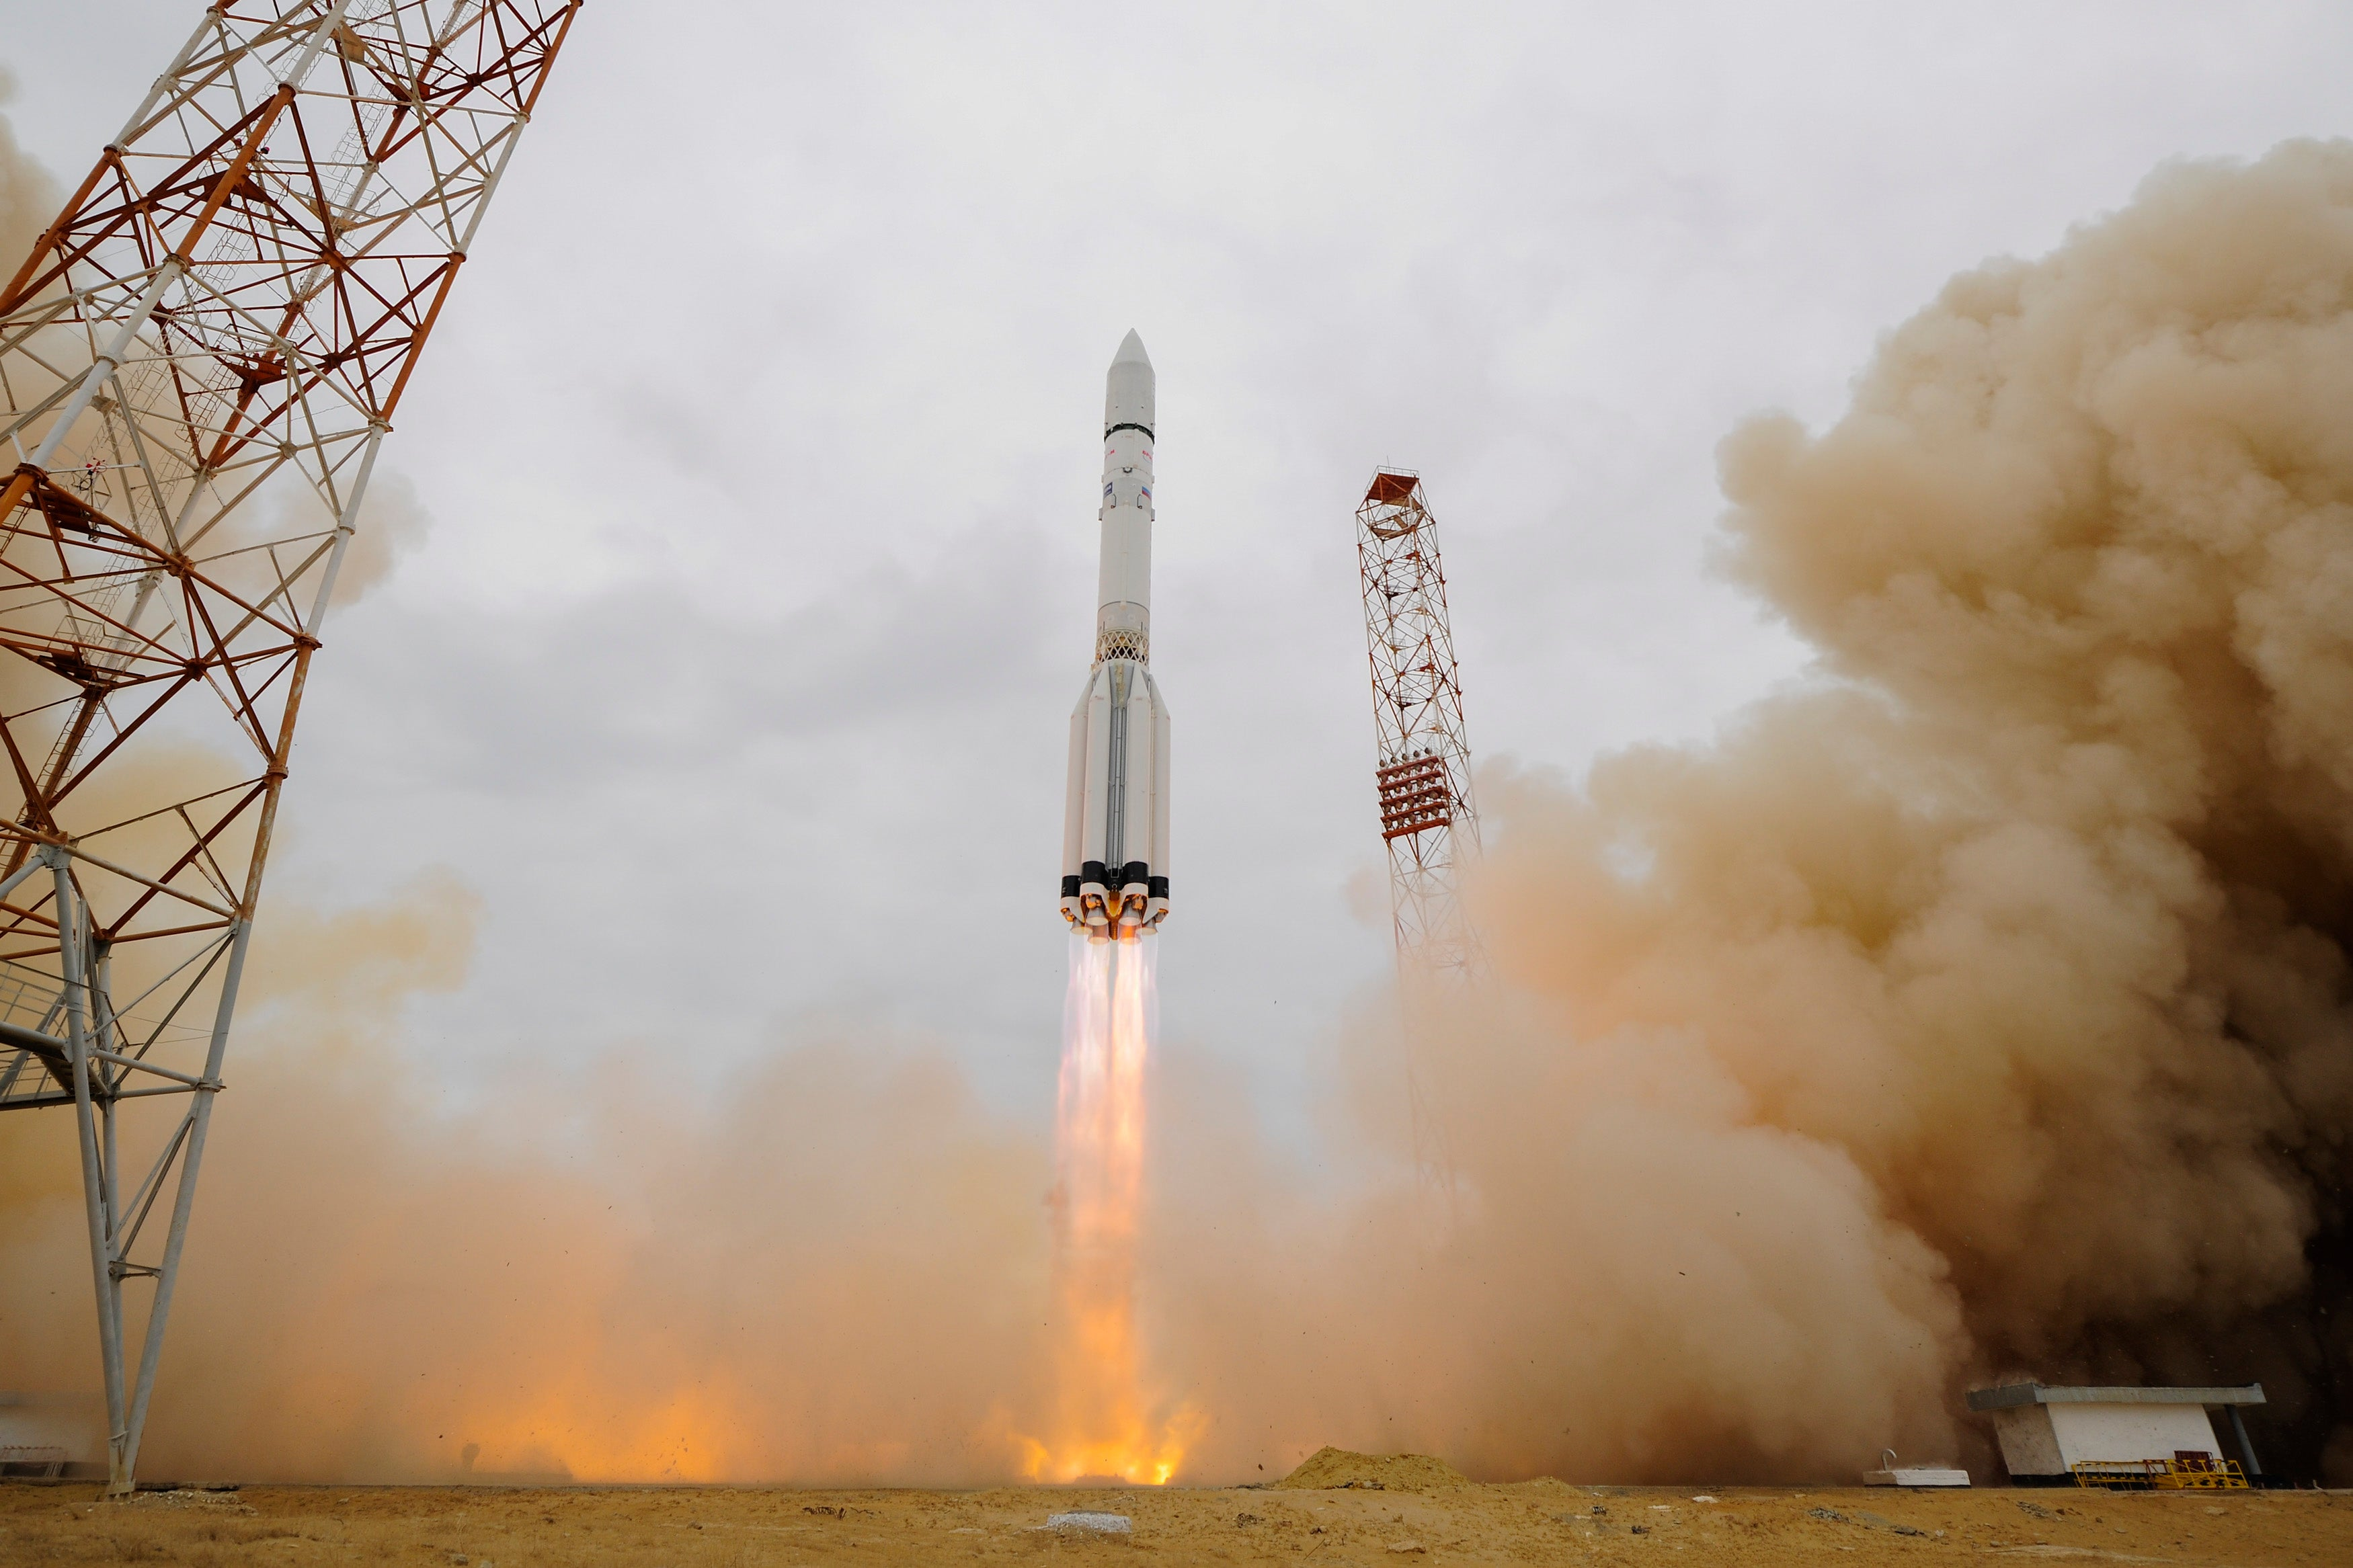 The ExoMars Launch Was a Resounding Success